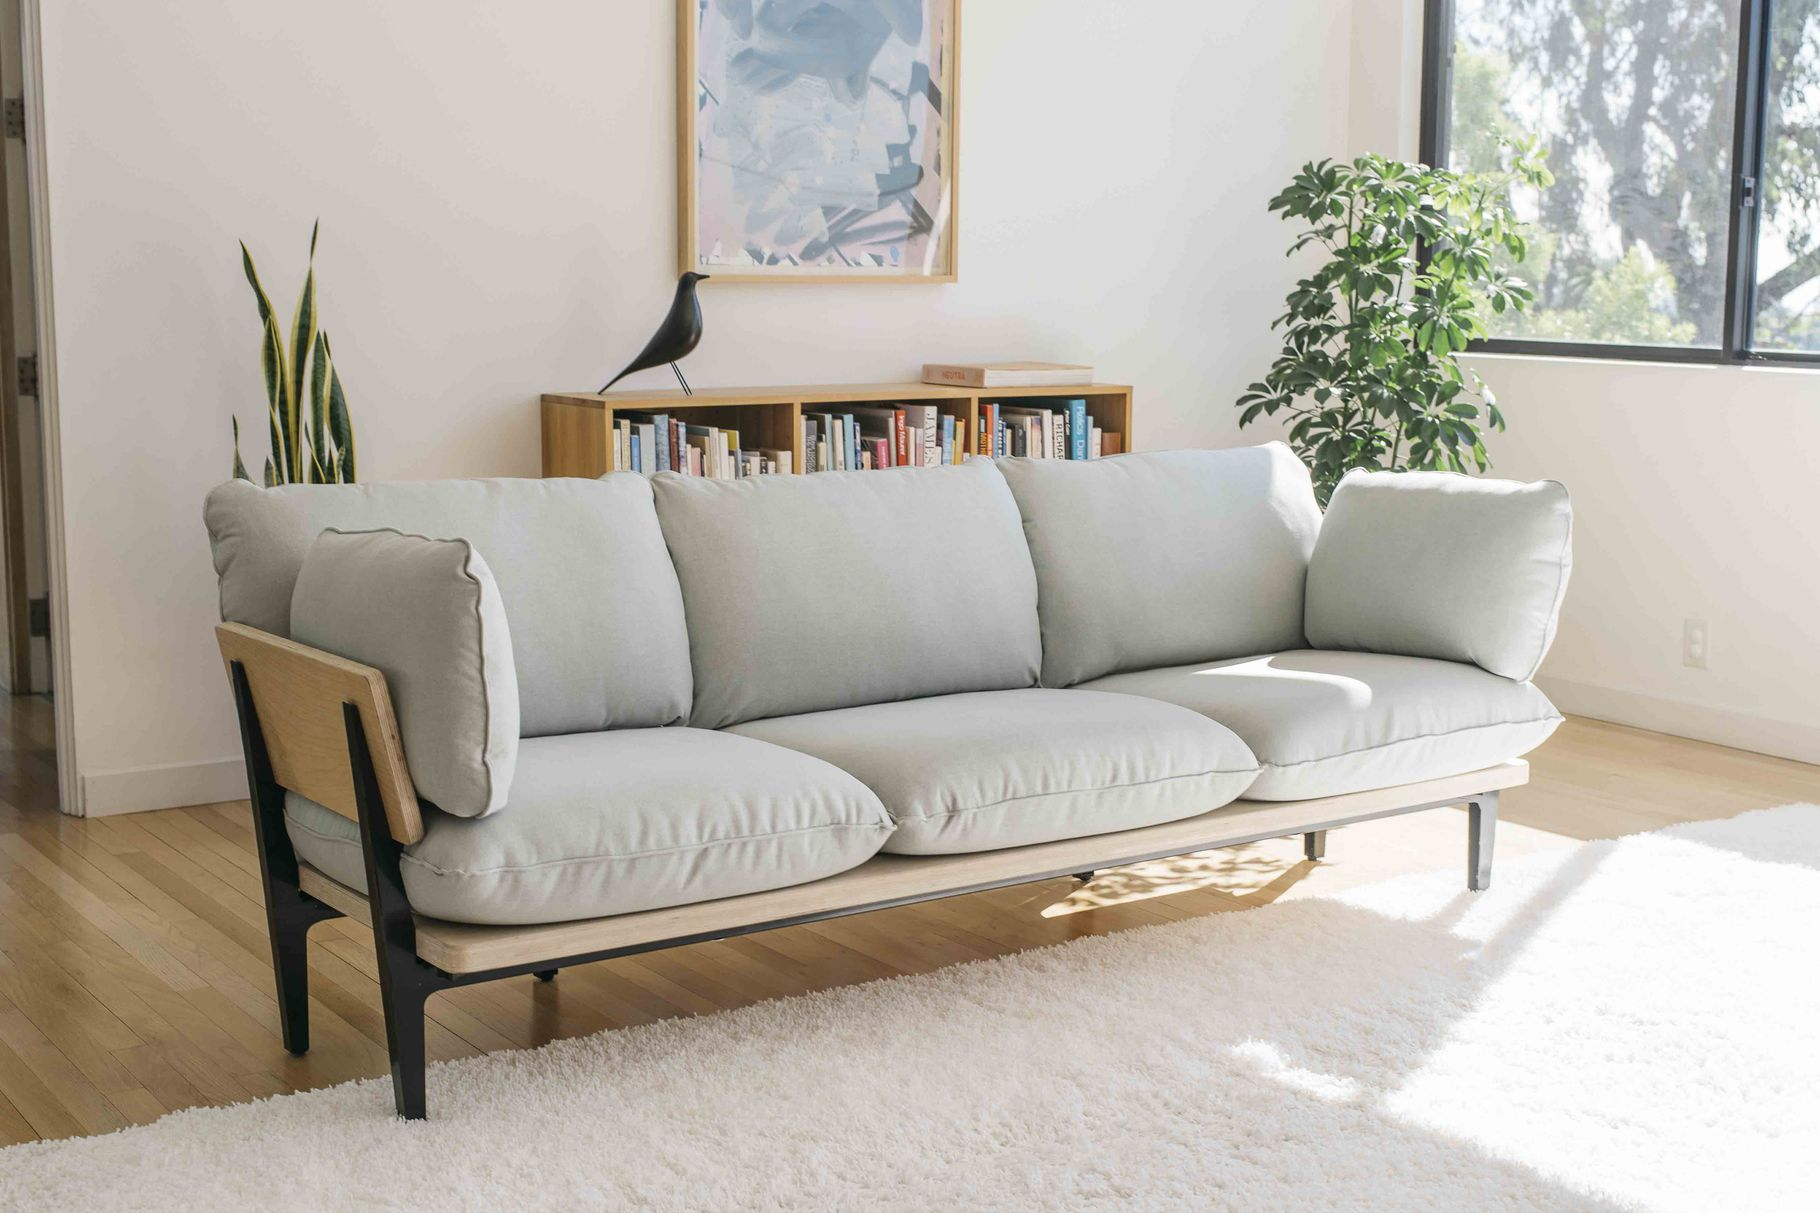 Flatpack sofas from furniture startup floyd launching in october curbed